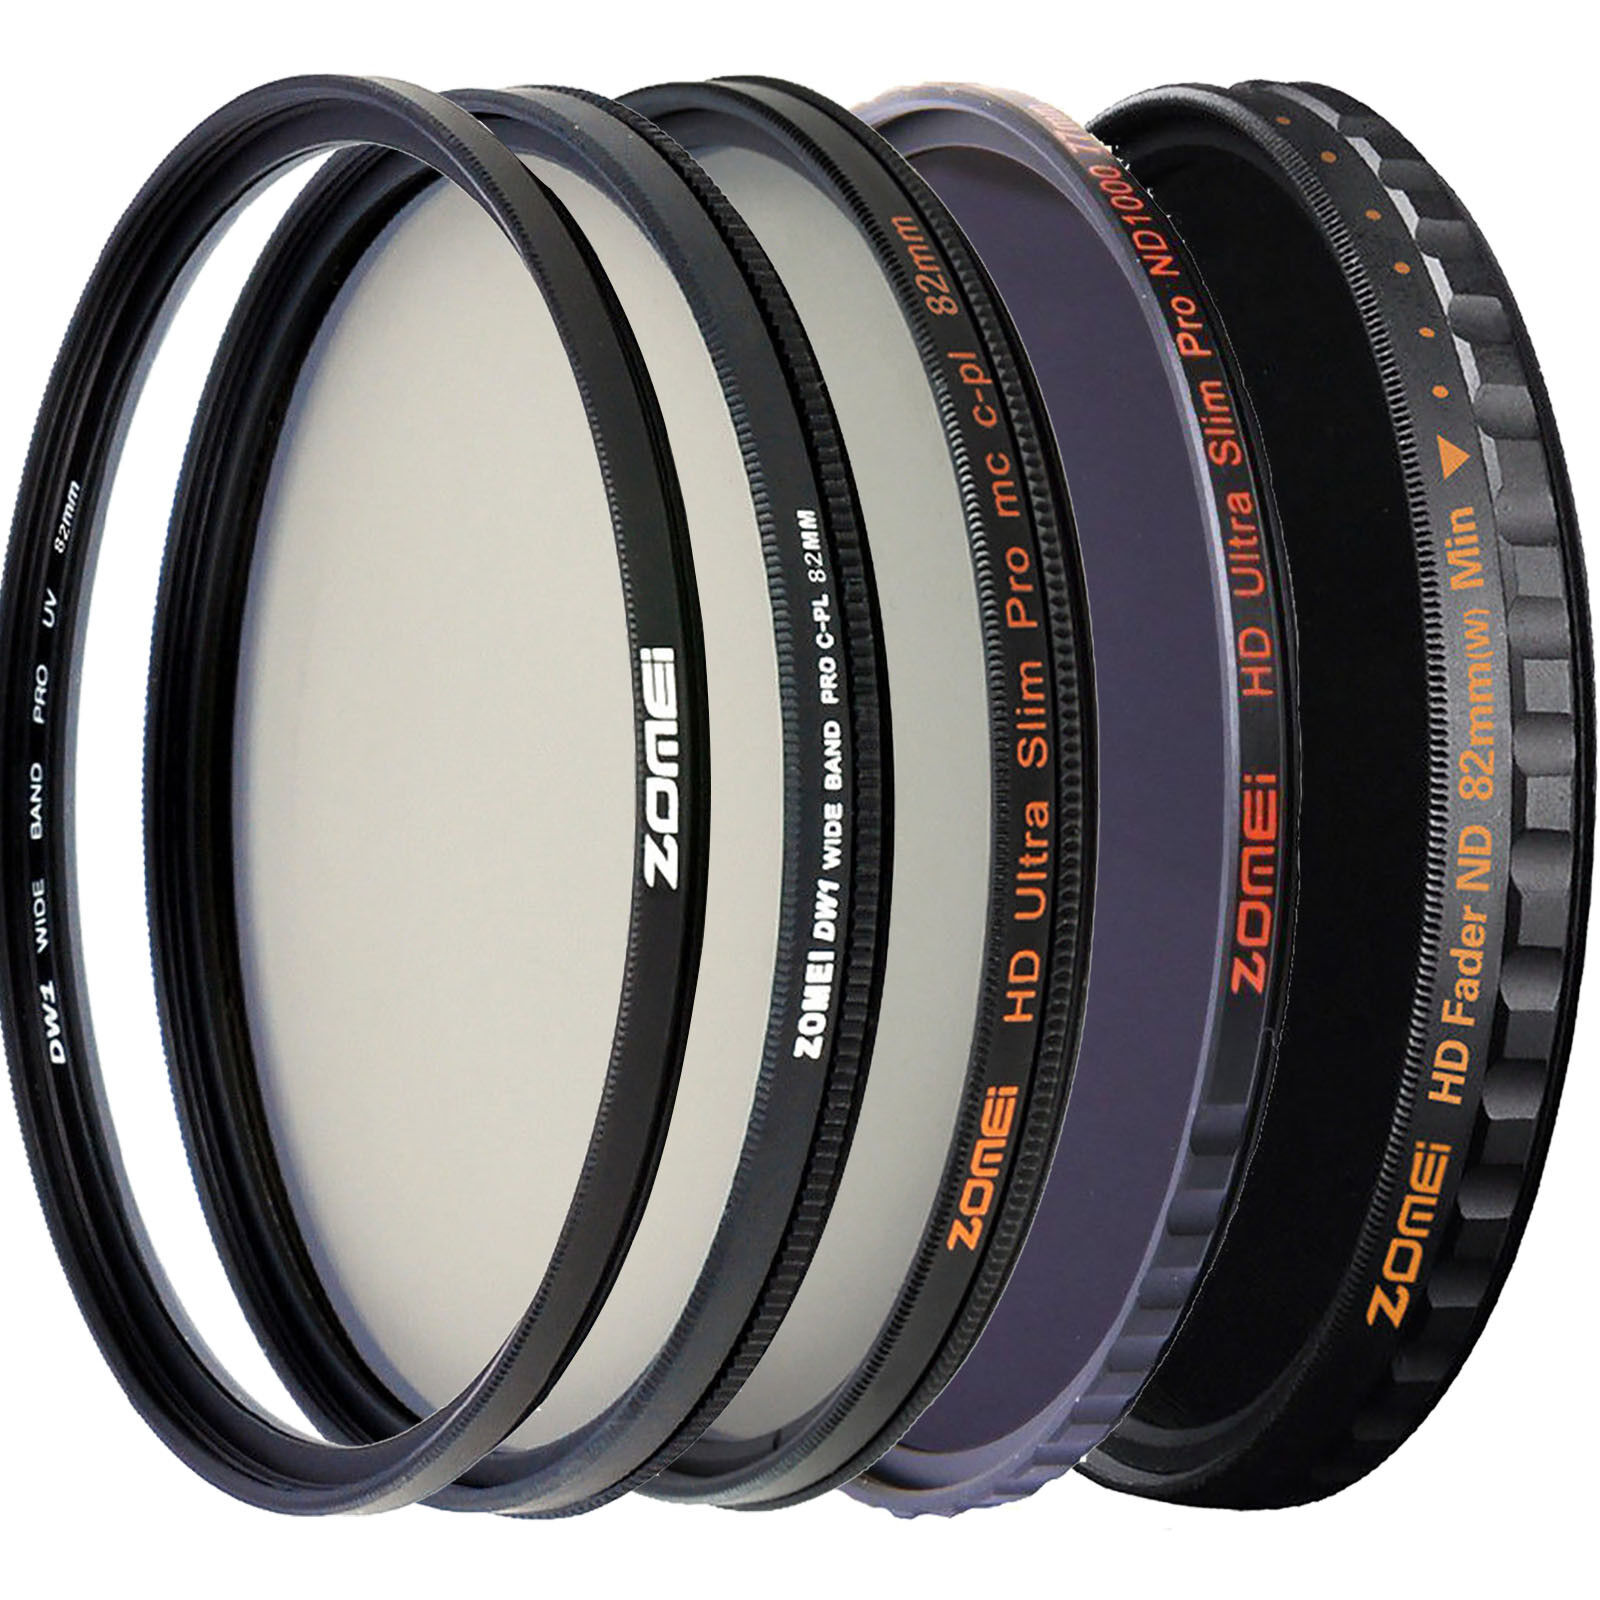 UV Filter 72mm,K/&F Concept 72mm Ultra Slim UV MC-UV Glass Filter 18-Layer Multi Coated Waterproof Shock-resistant Ultra Violet Ultraviolet Protection Lens Filter